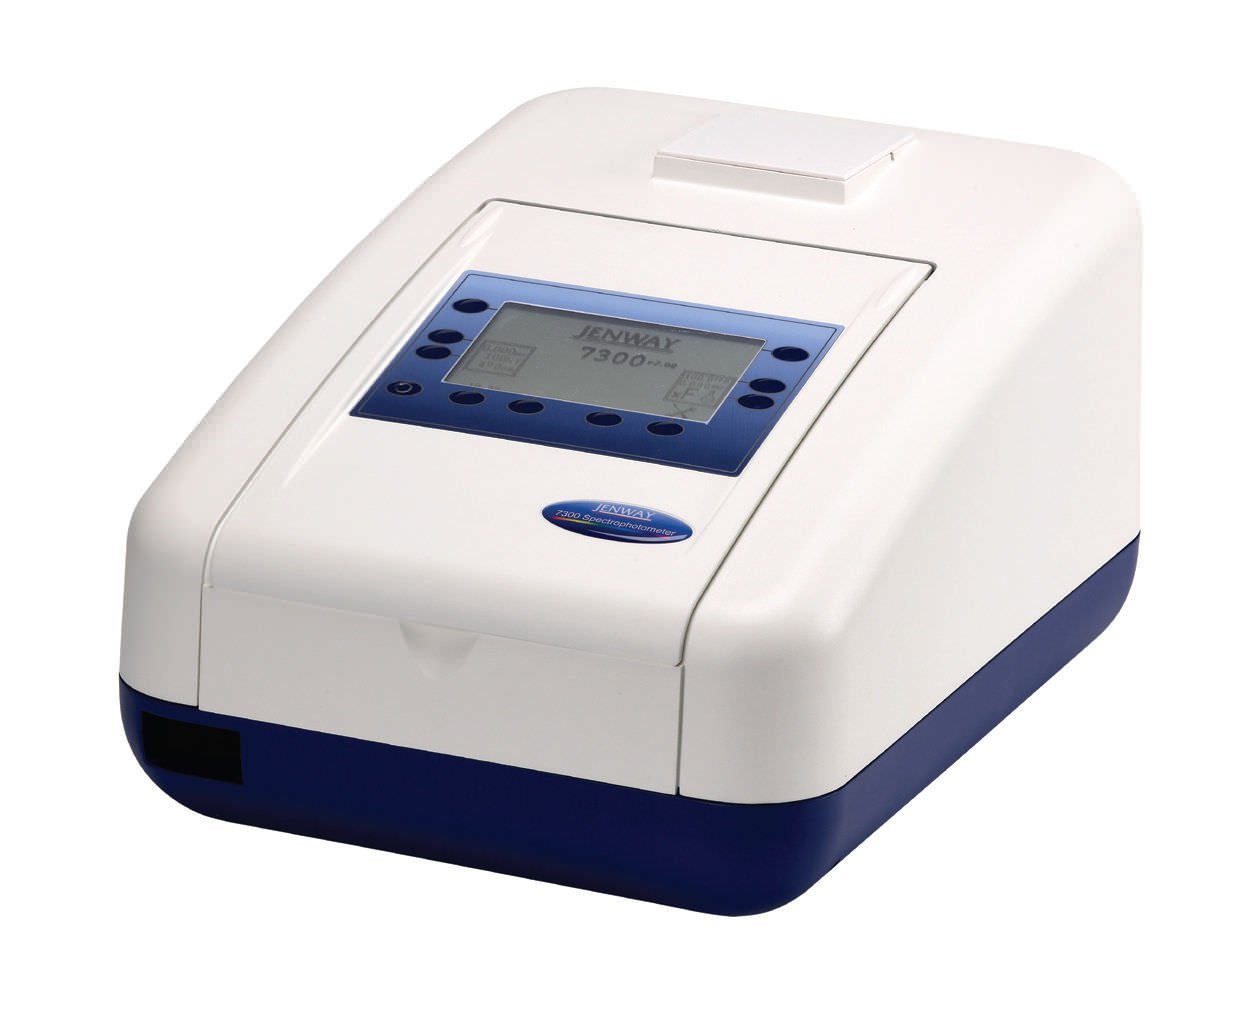 7300 spectrophotometer, Jenway